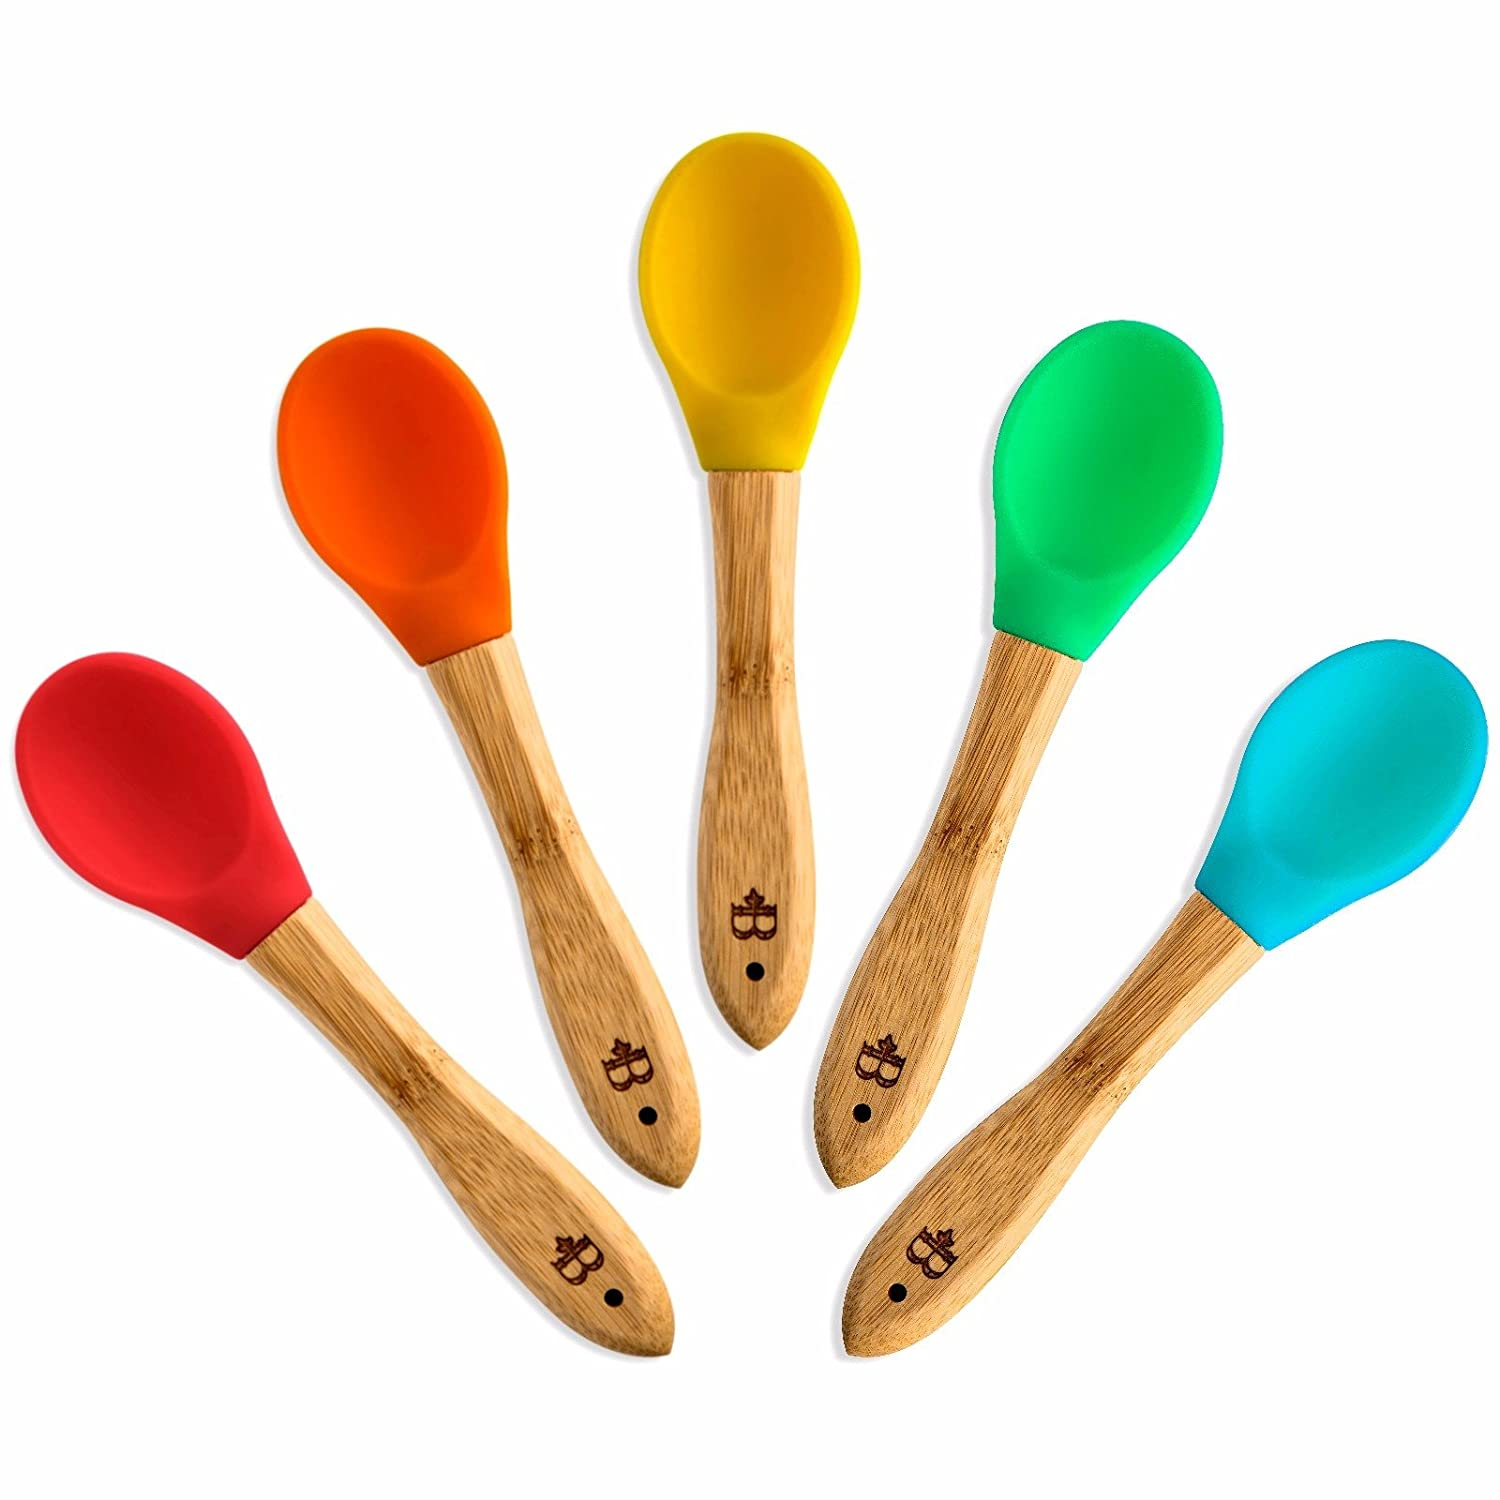 Baby Feeding Spoons Set (5 Pack) - First Stage Bamboo Weaning Spoons with Soft Silicone Tips for Babies - Gum-Friendly BPA, Phthalate, Plastic & Lead Free - Great Infant Gift by Bambusi Belmint BAM-5SP